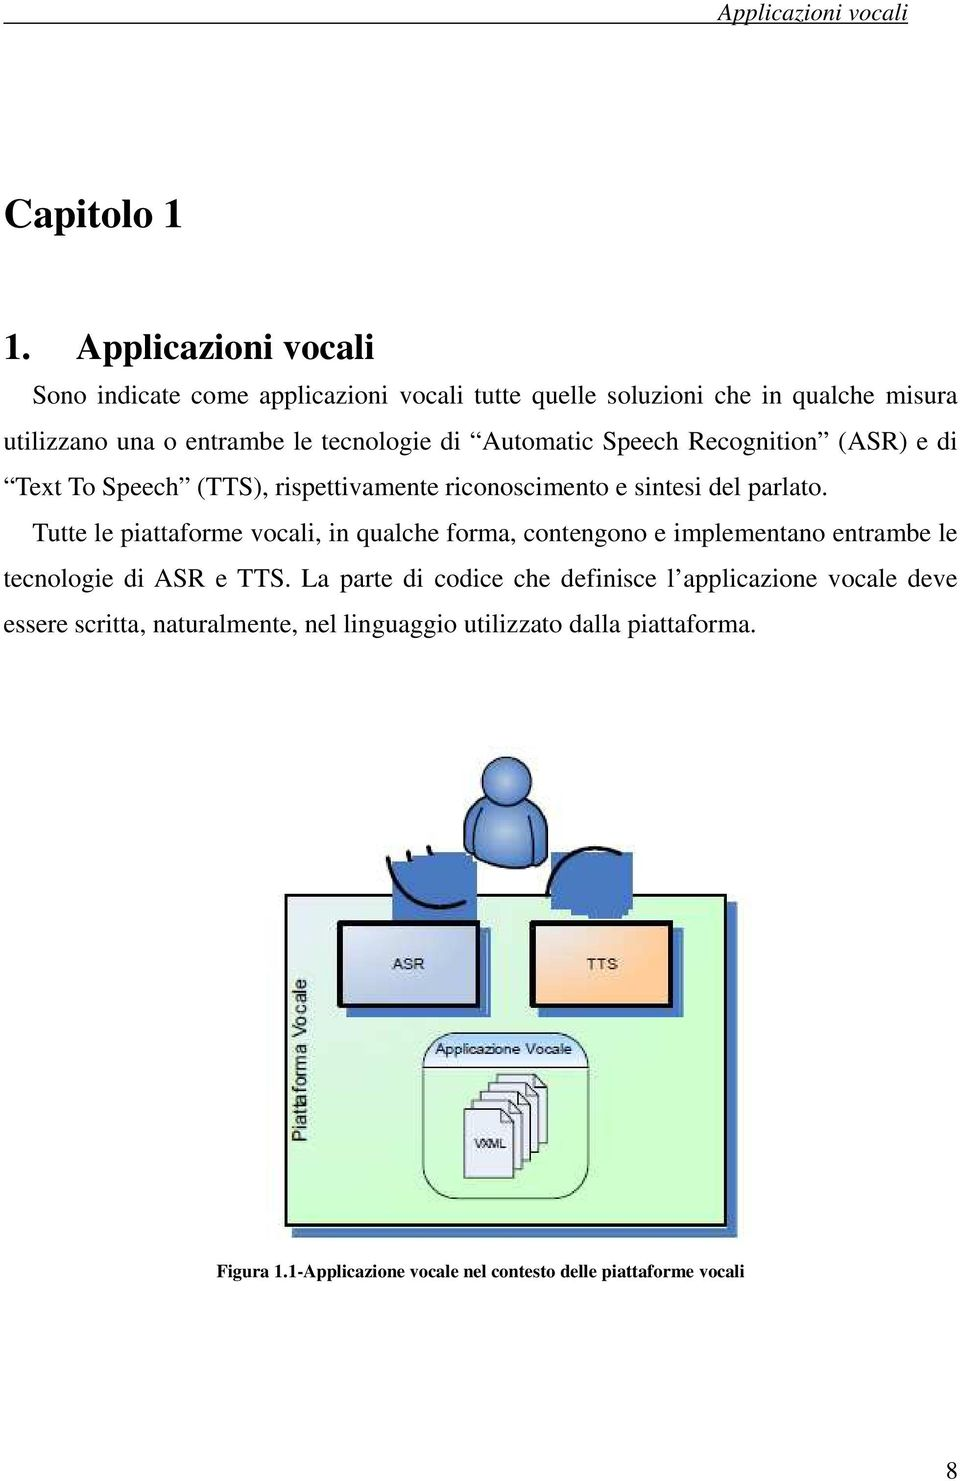 Automatic Speech Recognition (ASR) e di Text To Speech (TTS), rispettivamente riconoscimento e sintesi del parlato.